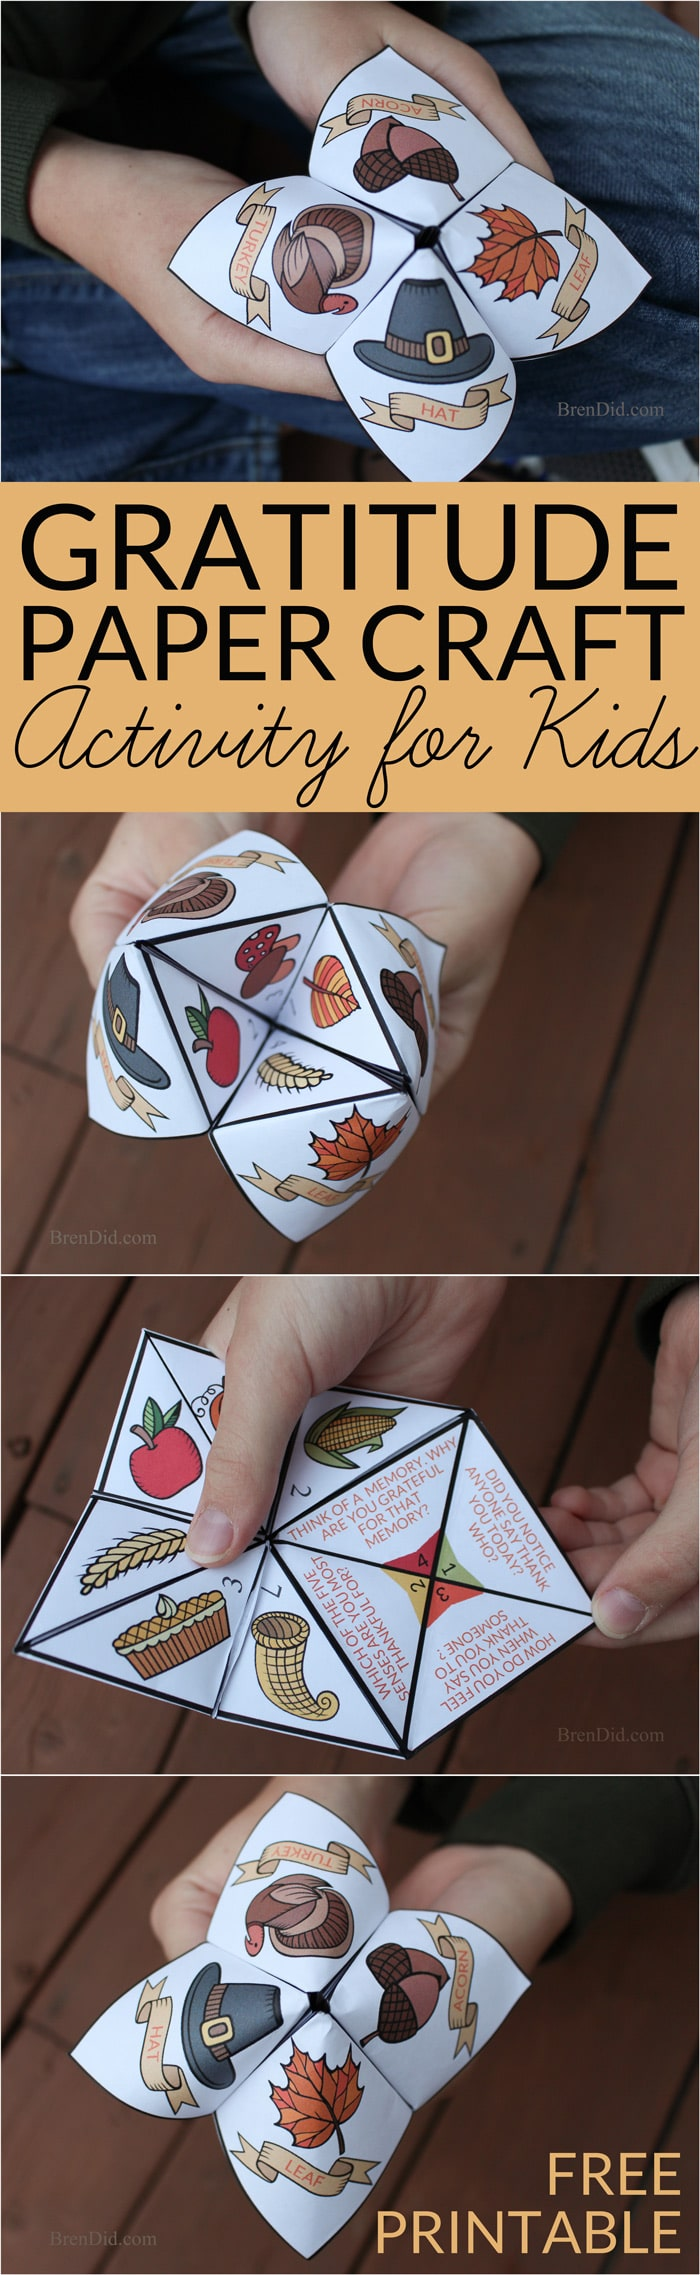 Gratitude activity for kids, thankfulness activity, Thanksgiving craft for kids Practice thankfulness with this free printable Thanksgiving Cootie Catcher. This easy Thanksgiving craft teaches thankfulness & helps kids think about what they are thankful for in life. Free printable craft for kids. Easy Kids Thanksgiving Activity.